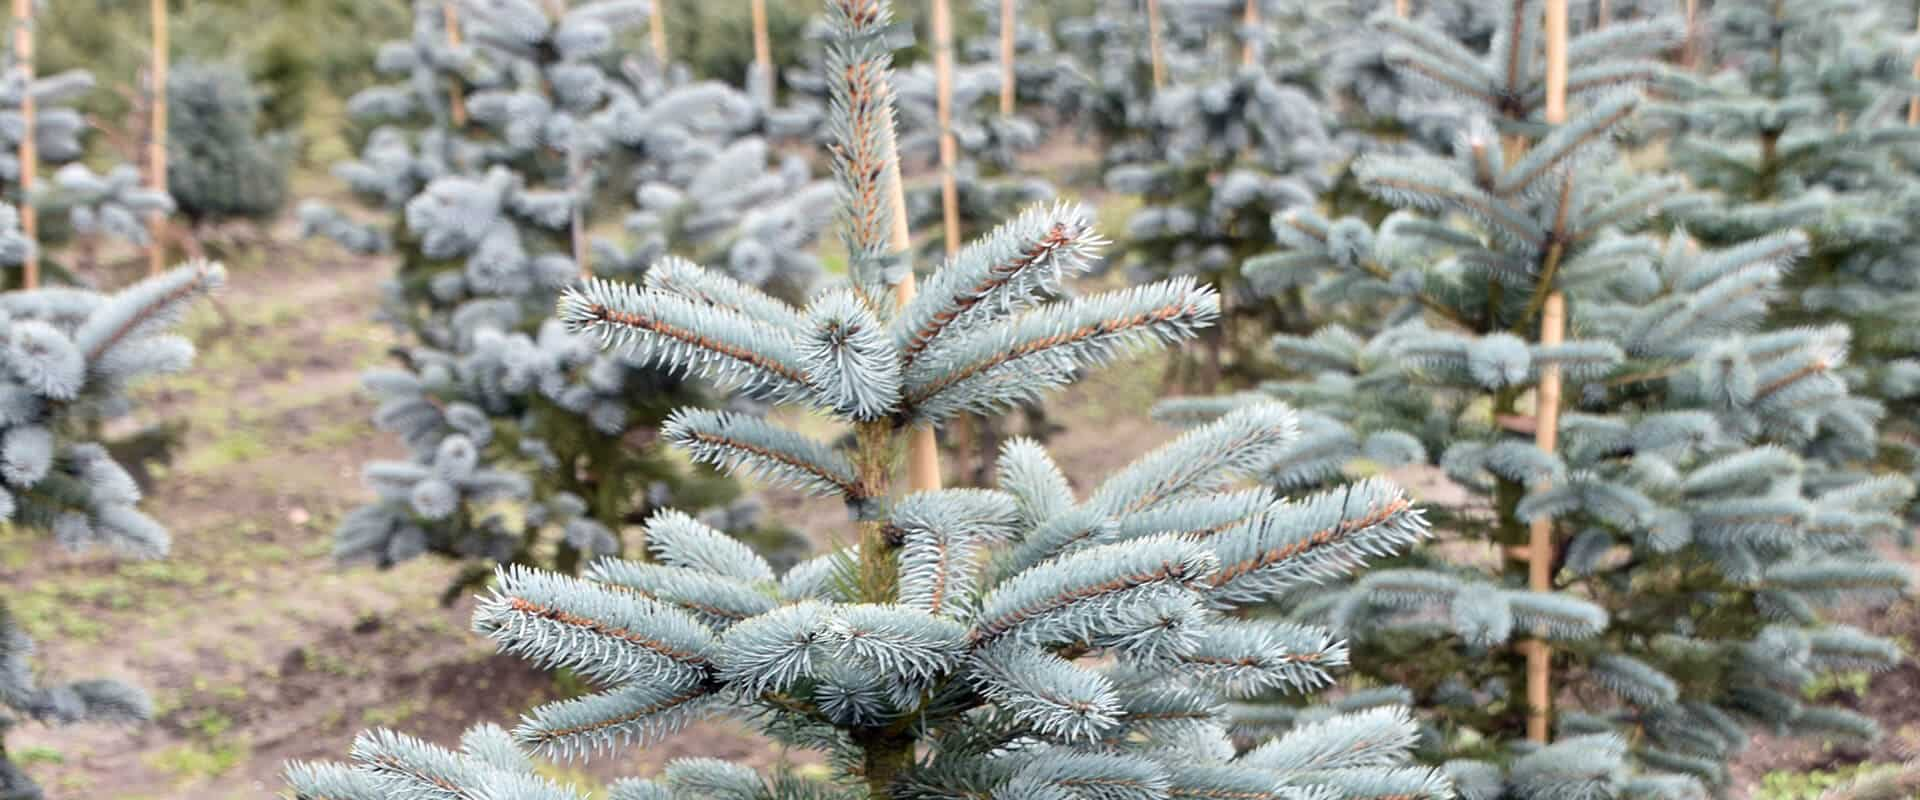 Pictures of blue spruce Colorado Blue Spruce Images, Stock Photos Vectors Shutterstock